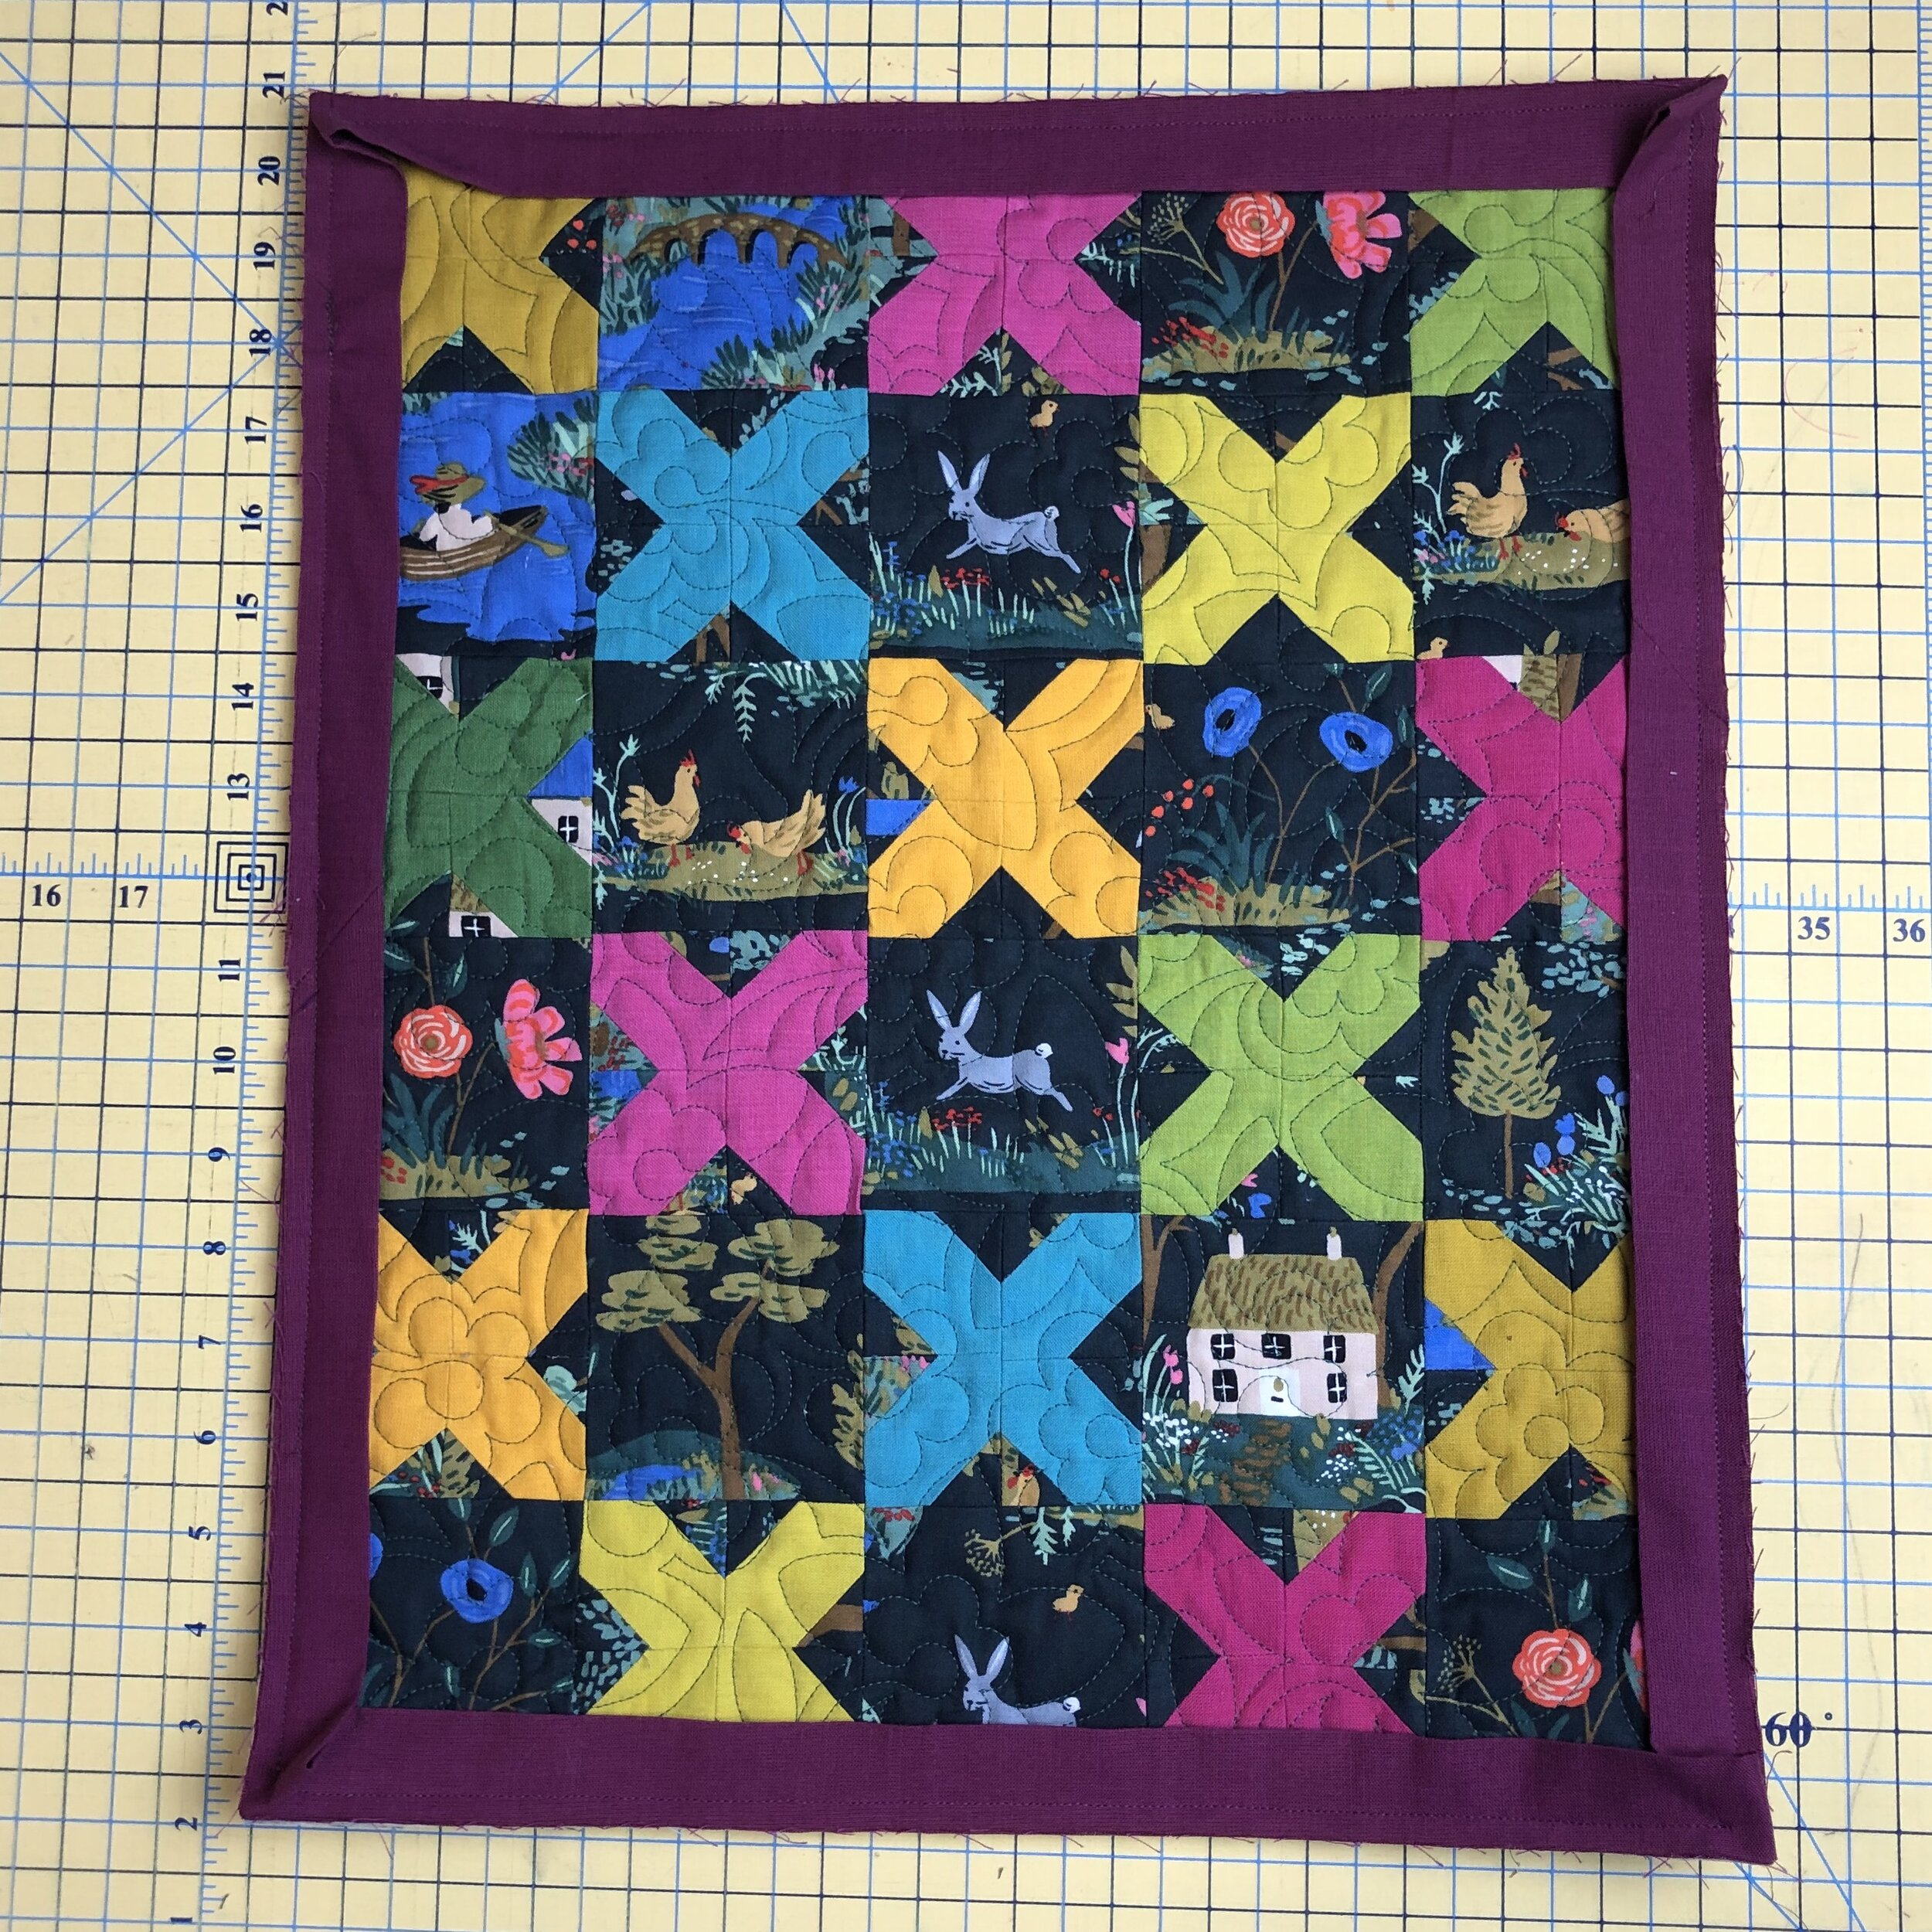 - 6. Bind as you would a regular quilt. Remove any basting stitches you can see.